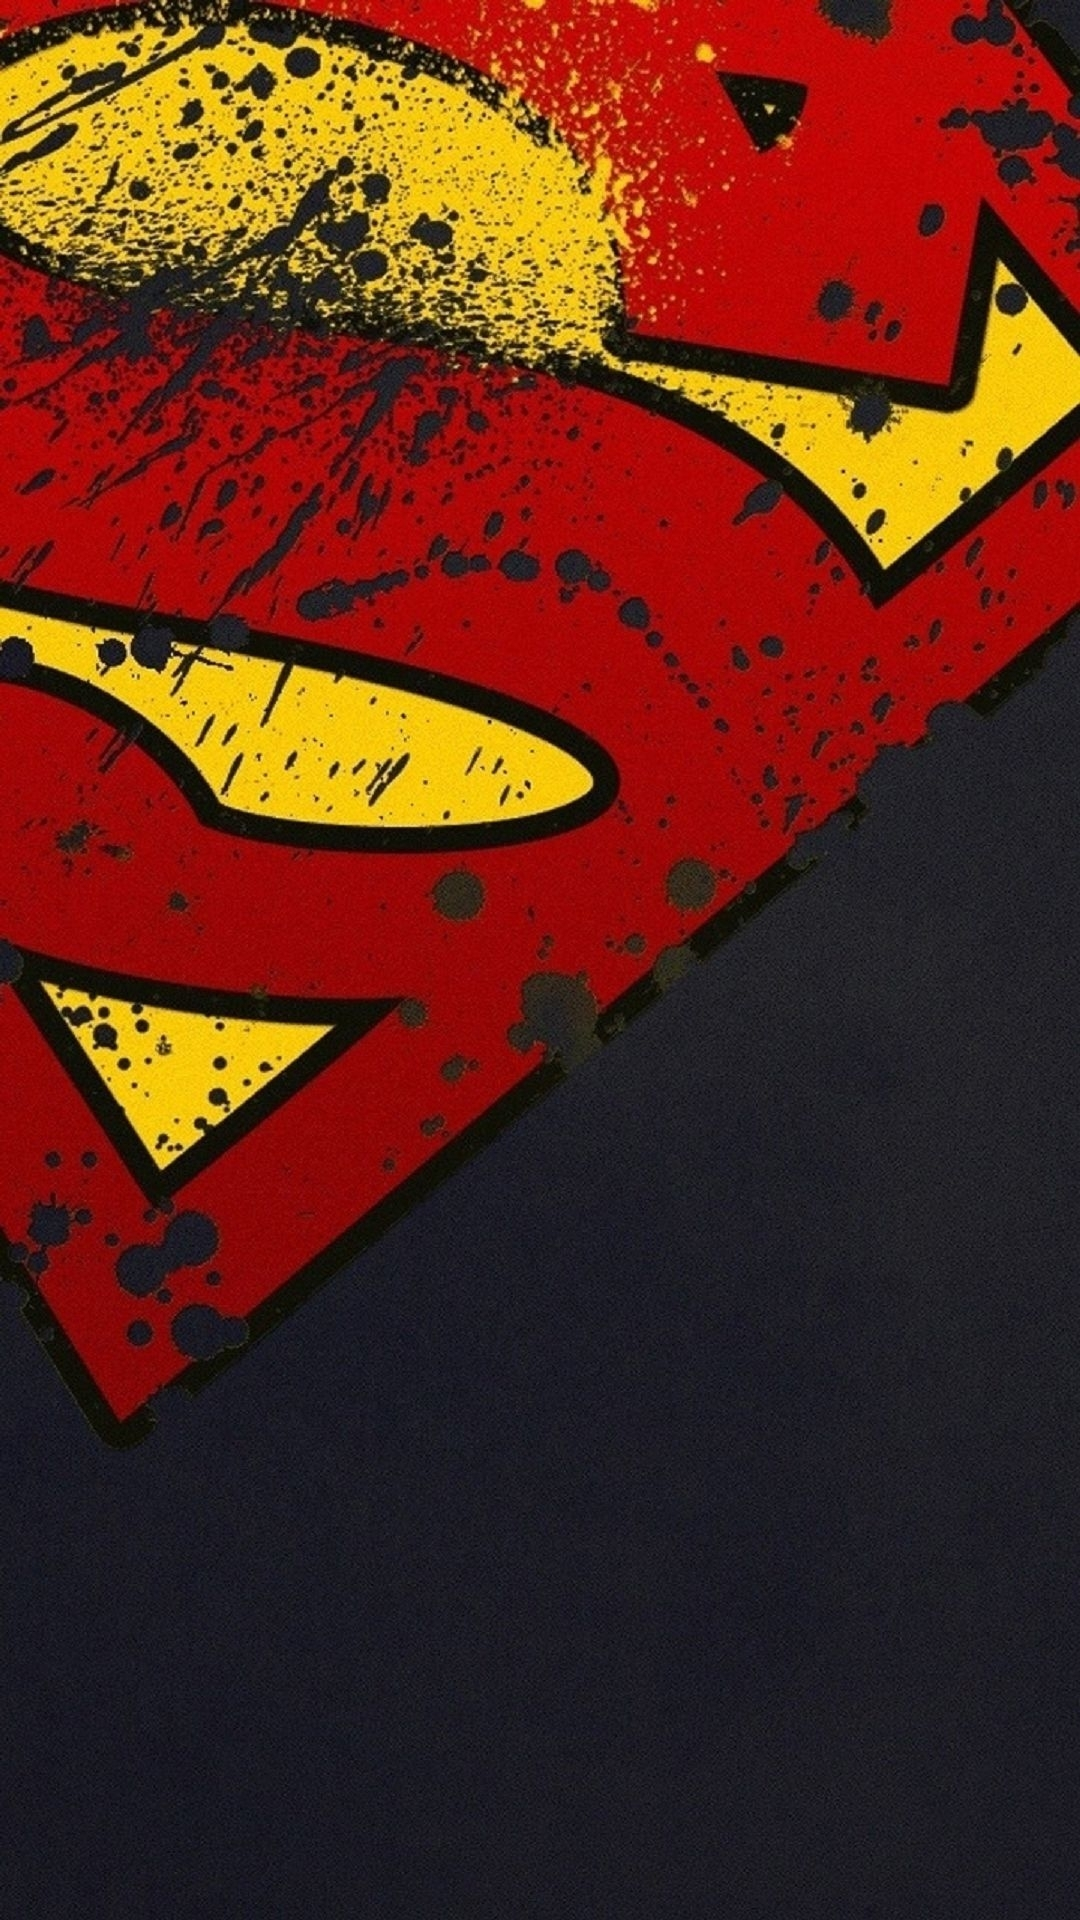 superman logo minimal android wallpaper free download